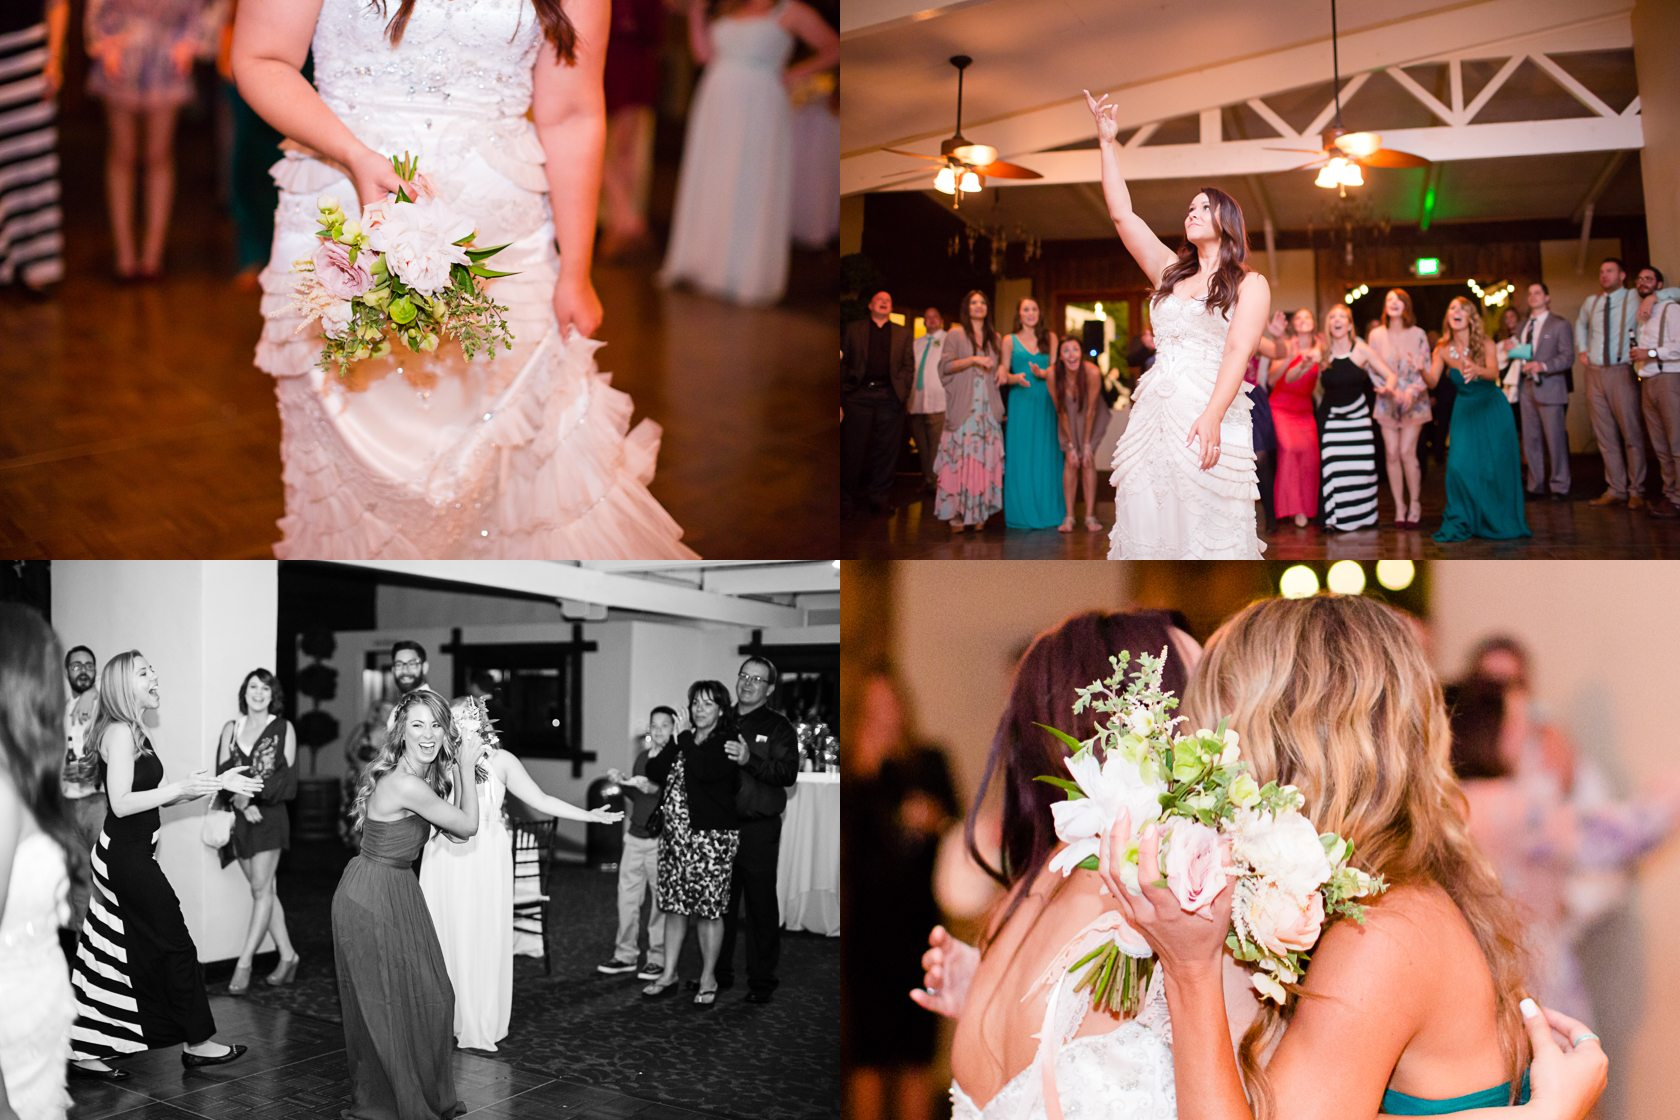 The_Printed_Palette_Wedding_at_Calamigos_Ranch_161.jpg